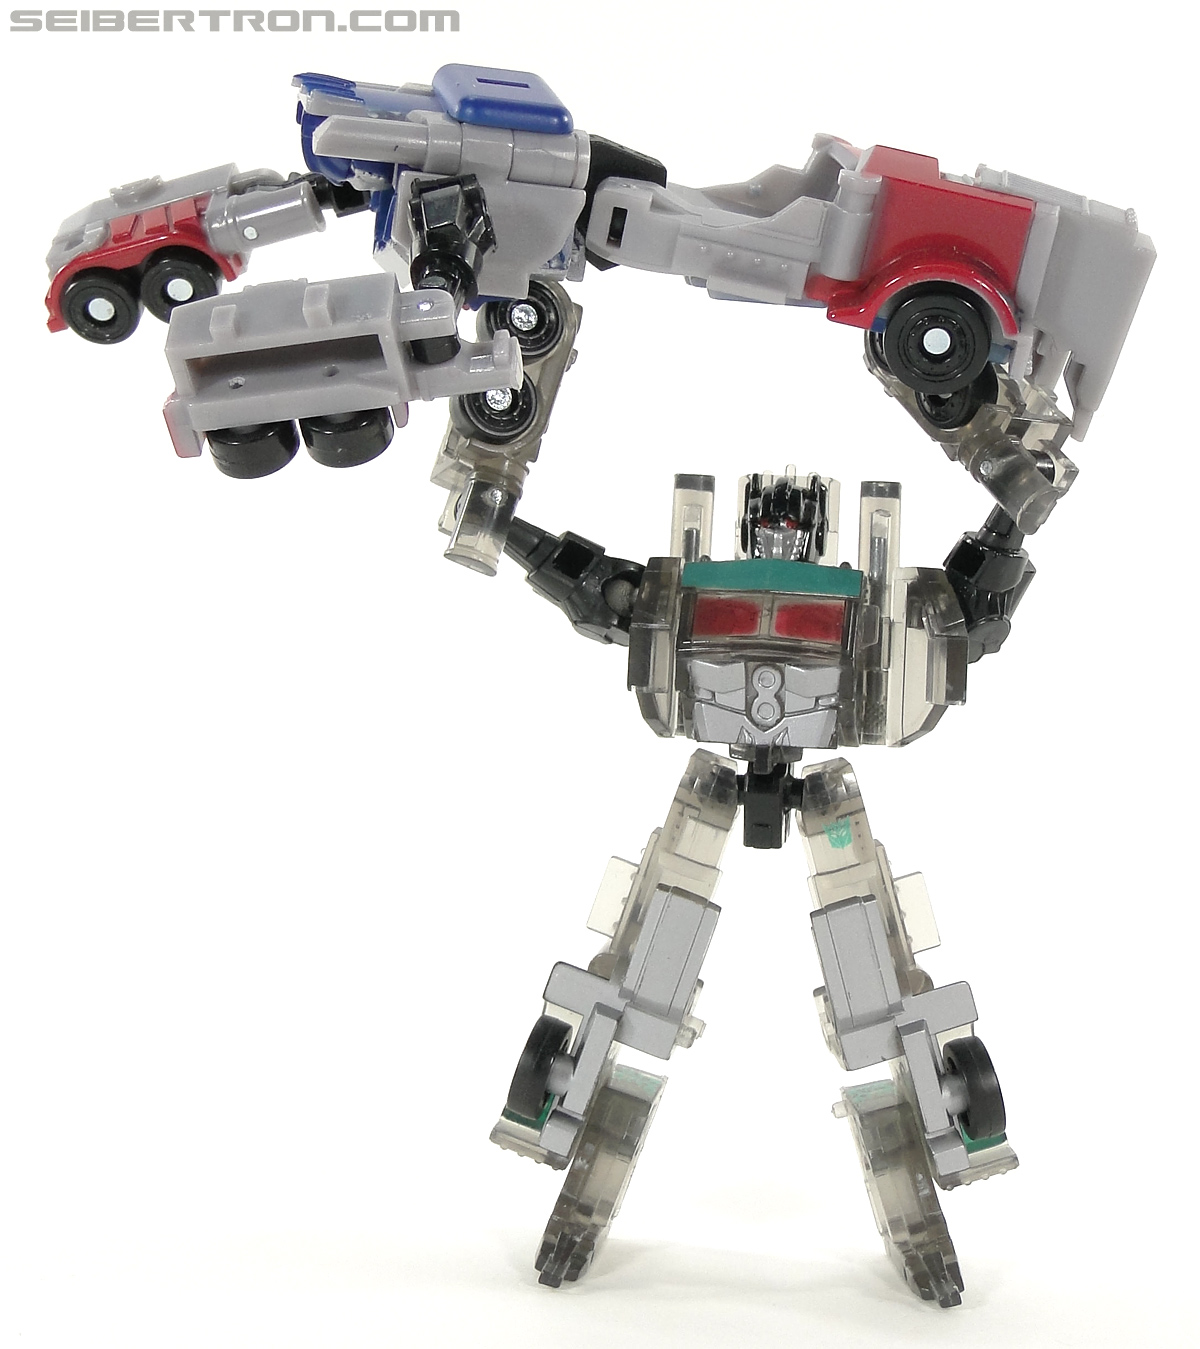 Transformers Dark of the Moon Darkside Optimus Prime (Image #74 of 75)